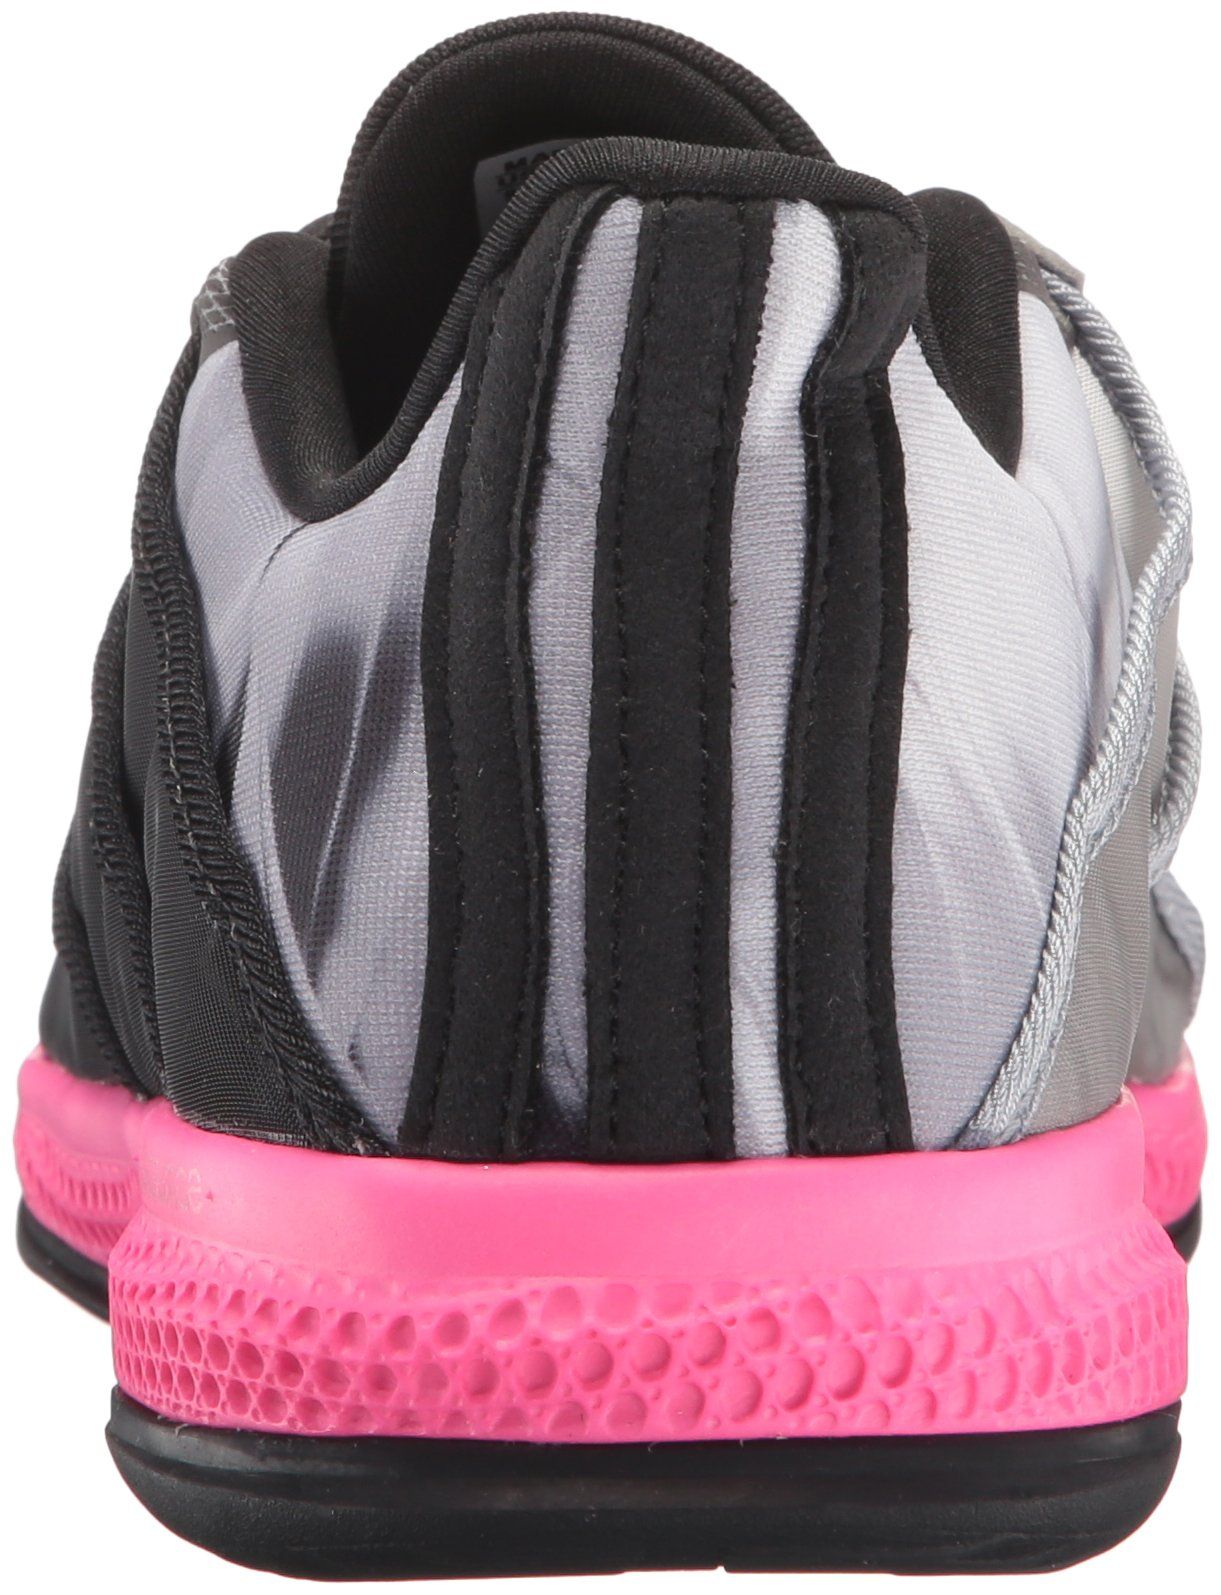 info for c98e6 23e6c adidas Performance Womens Gymbreaker Bounce CrossTrainer Shoe Black Shock  Pink Mid Grey S 6 M